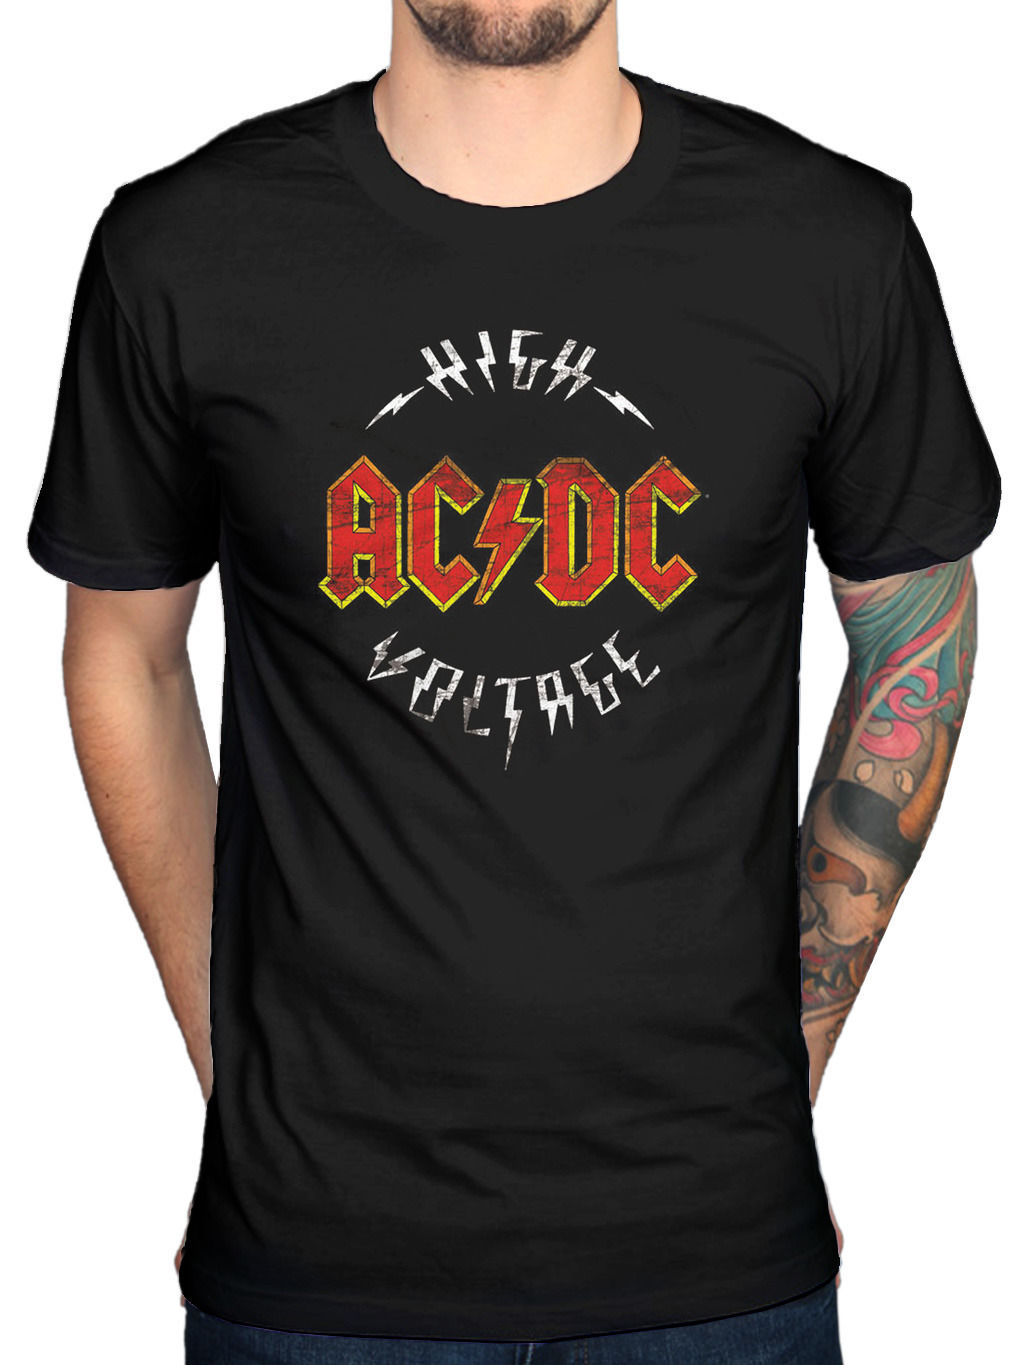 Tops Cool T Shirt Official ACDC High Voltage T-Shirt Those About To Rock Back In Black Dirty Deeds ...